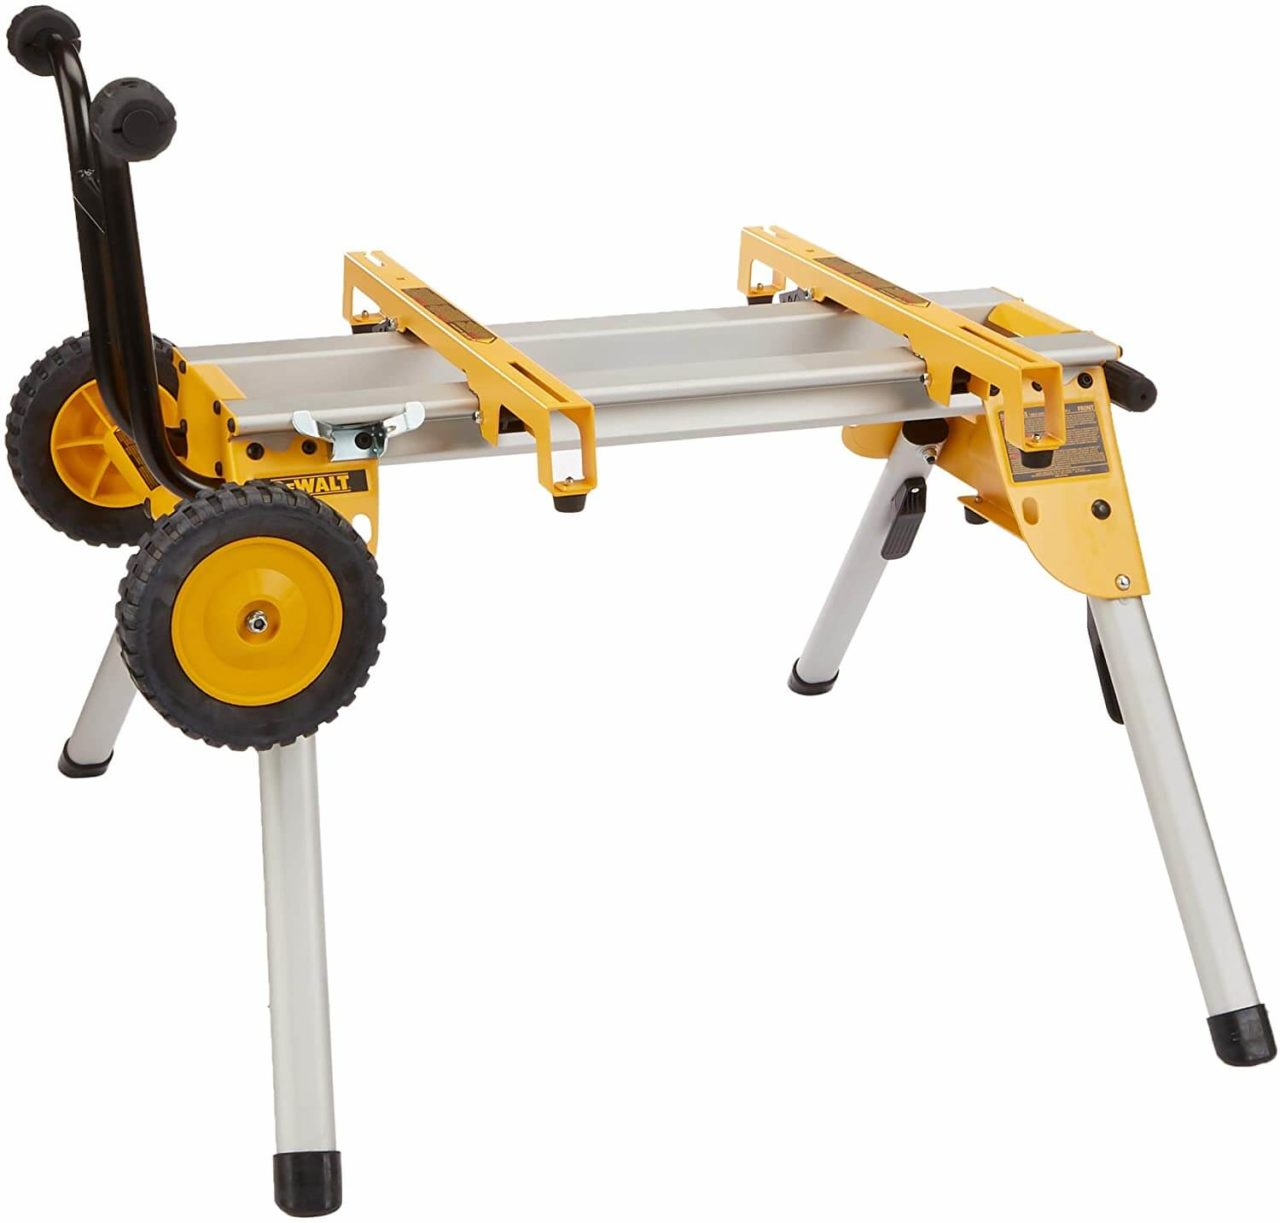 DeWALT DW7440RS Rolling Table Saw Stand - Best Table Saw Stand